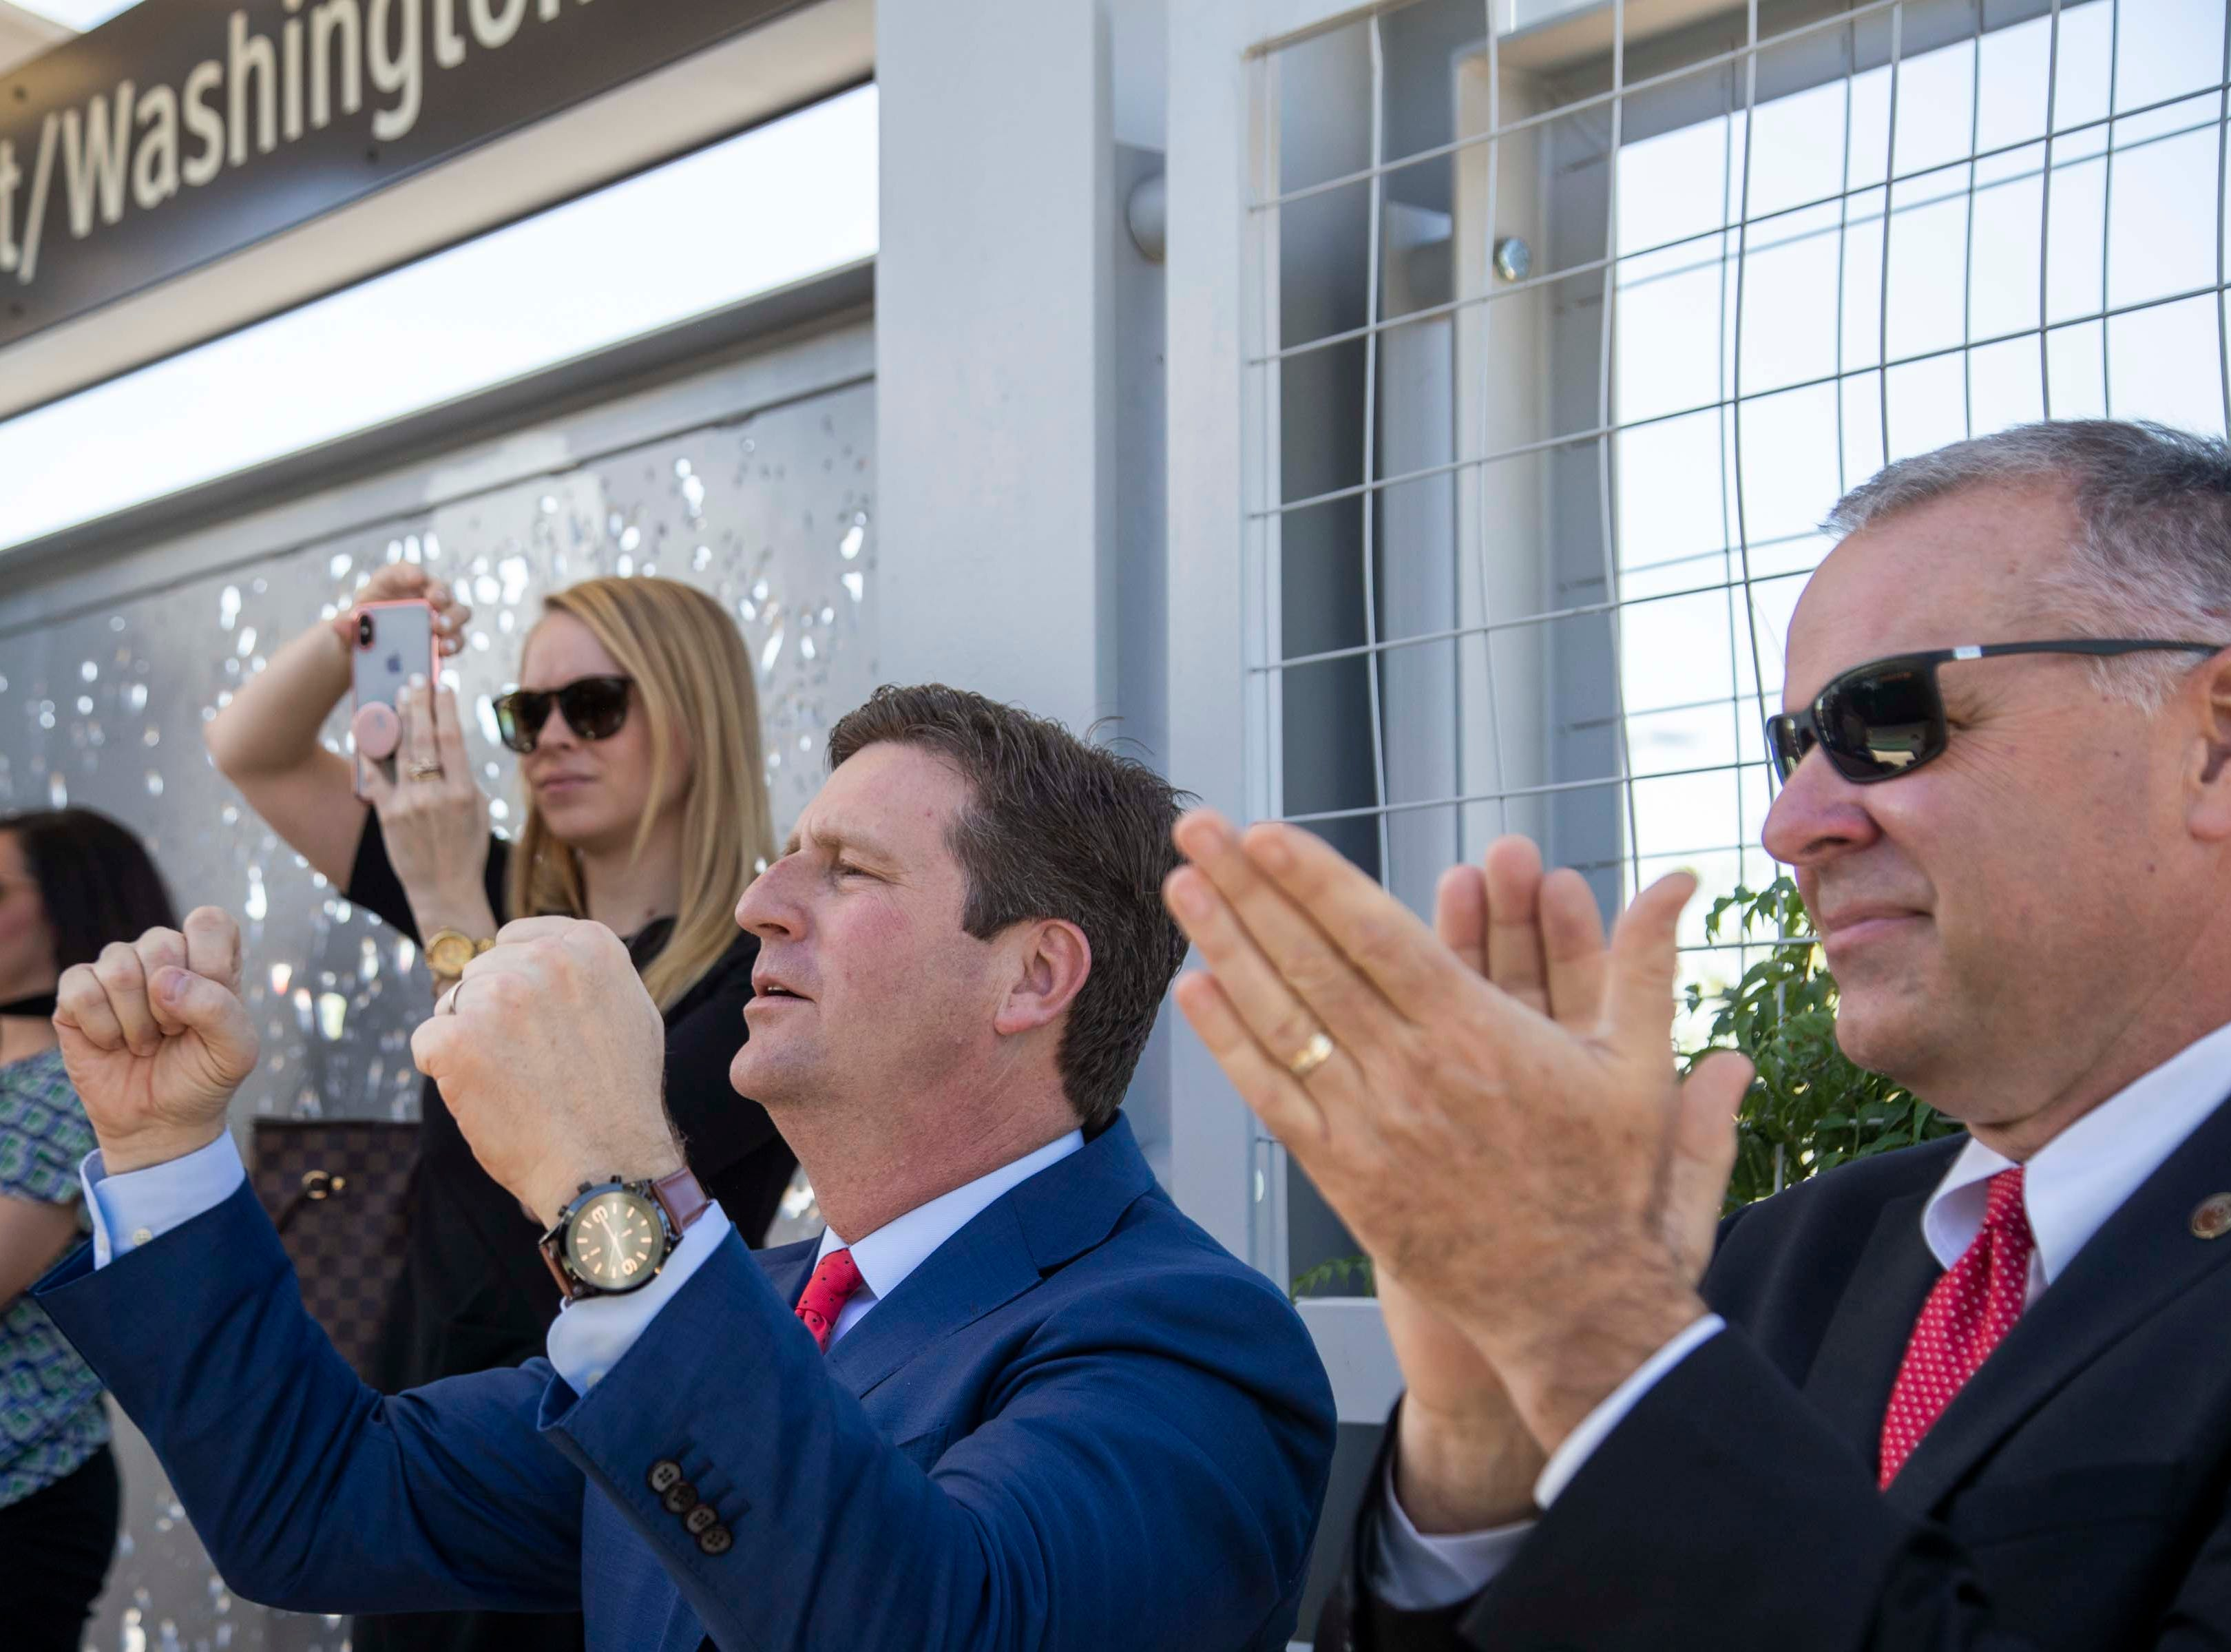 Congressman Greg Stanton and others cheer as the light rail arrived at the 50th Street and Washington station, which will provide additional access to Ability 360, one of Arizona's largest disability resource centers.